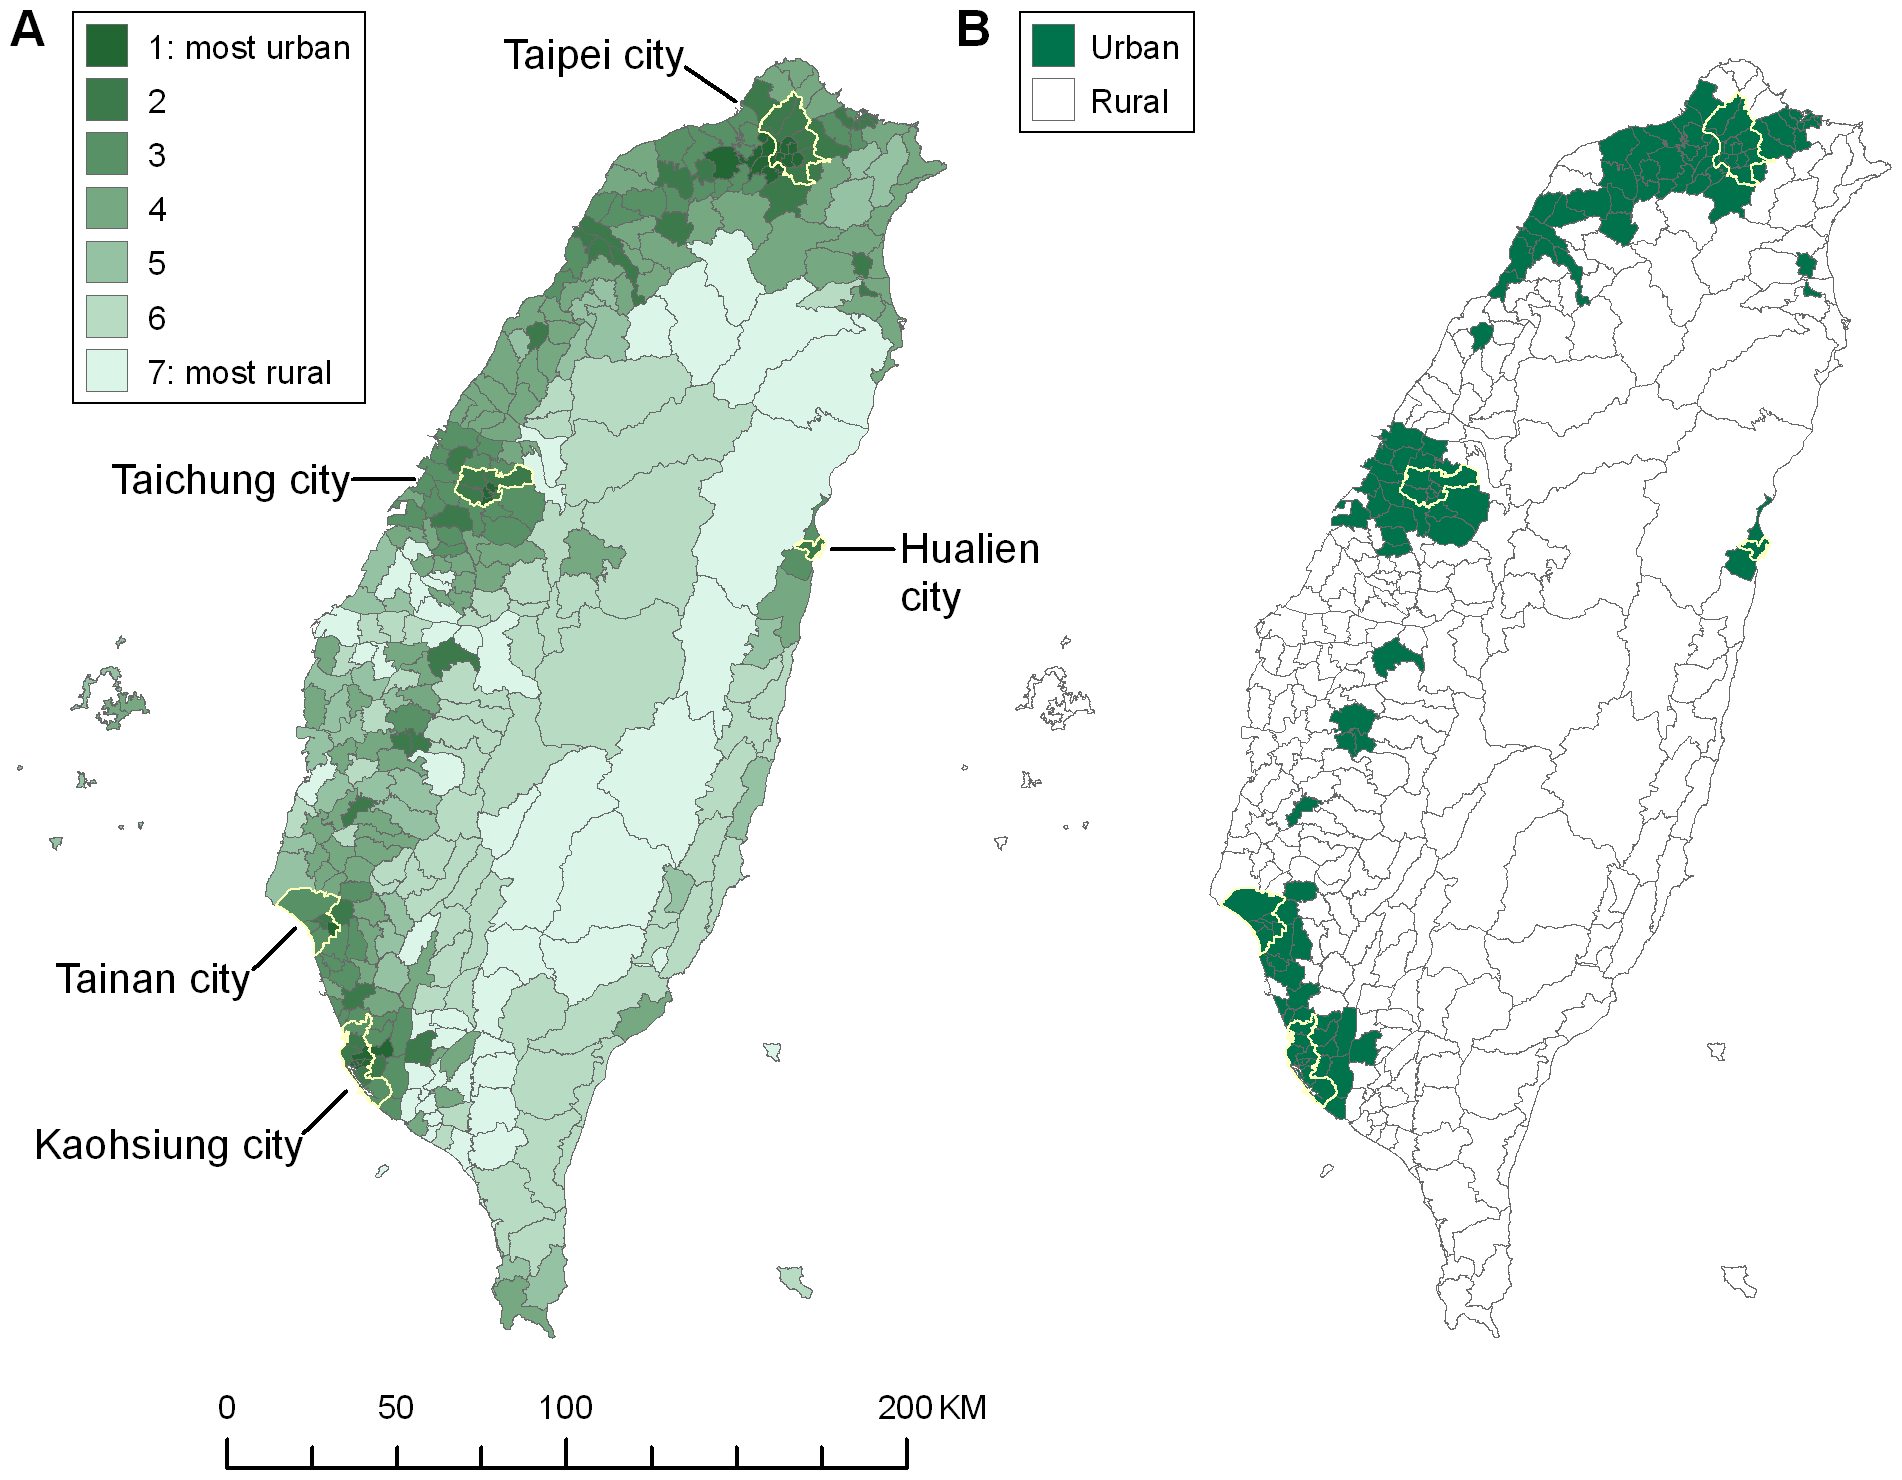 Maps of Taiwanese townships by urbanisation level, 2000.